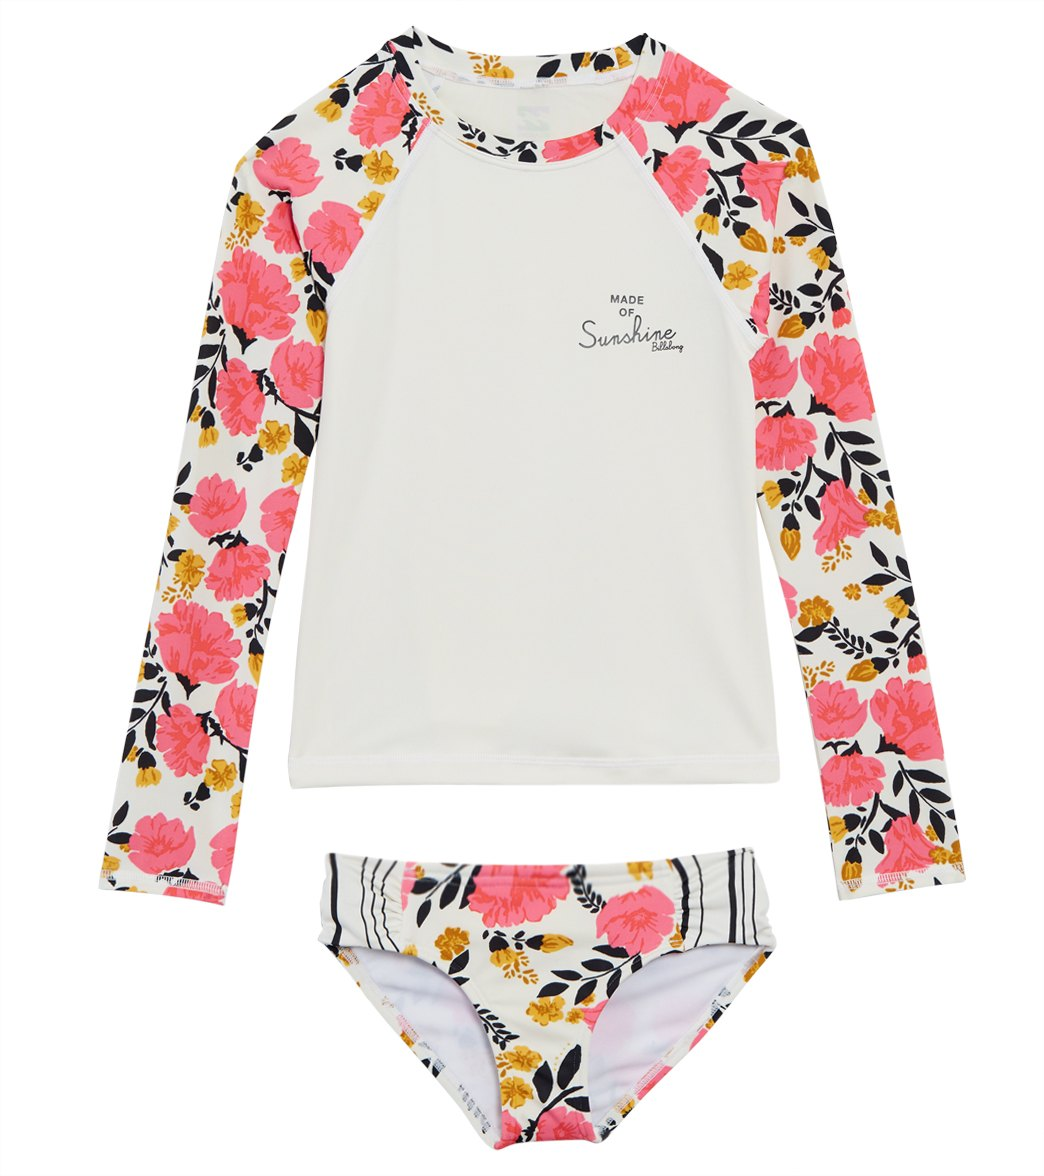 943bed35c2034 Billabong Girls' Sun Dream Long Sleeve Rash Guard Set (Little Kid, Big Kid)  at SwimOutlet.com - Free Shipping